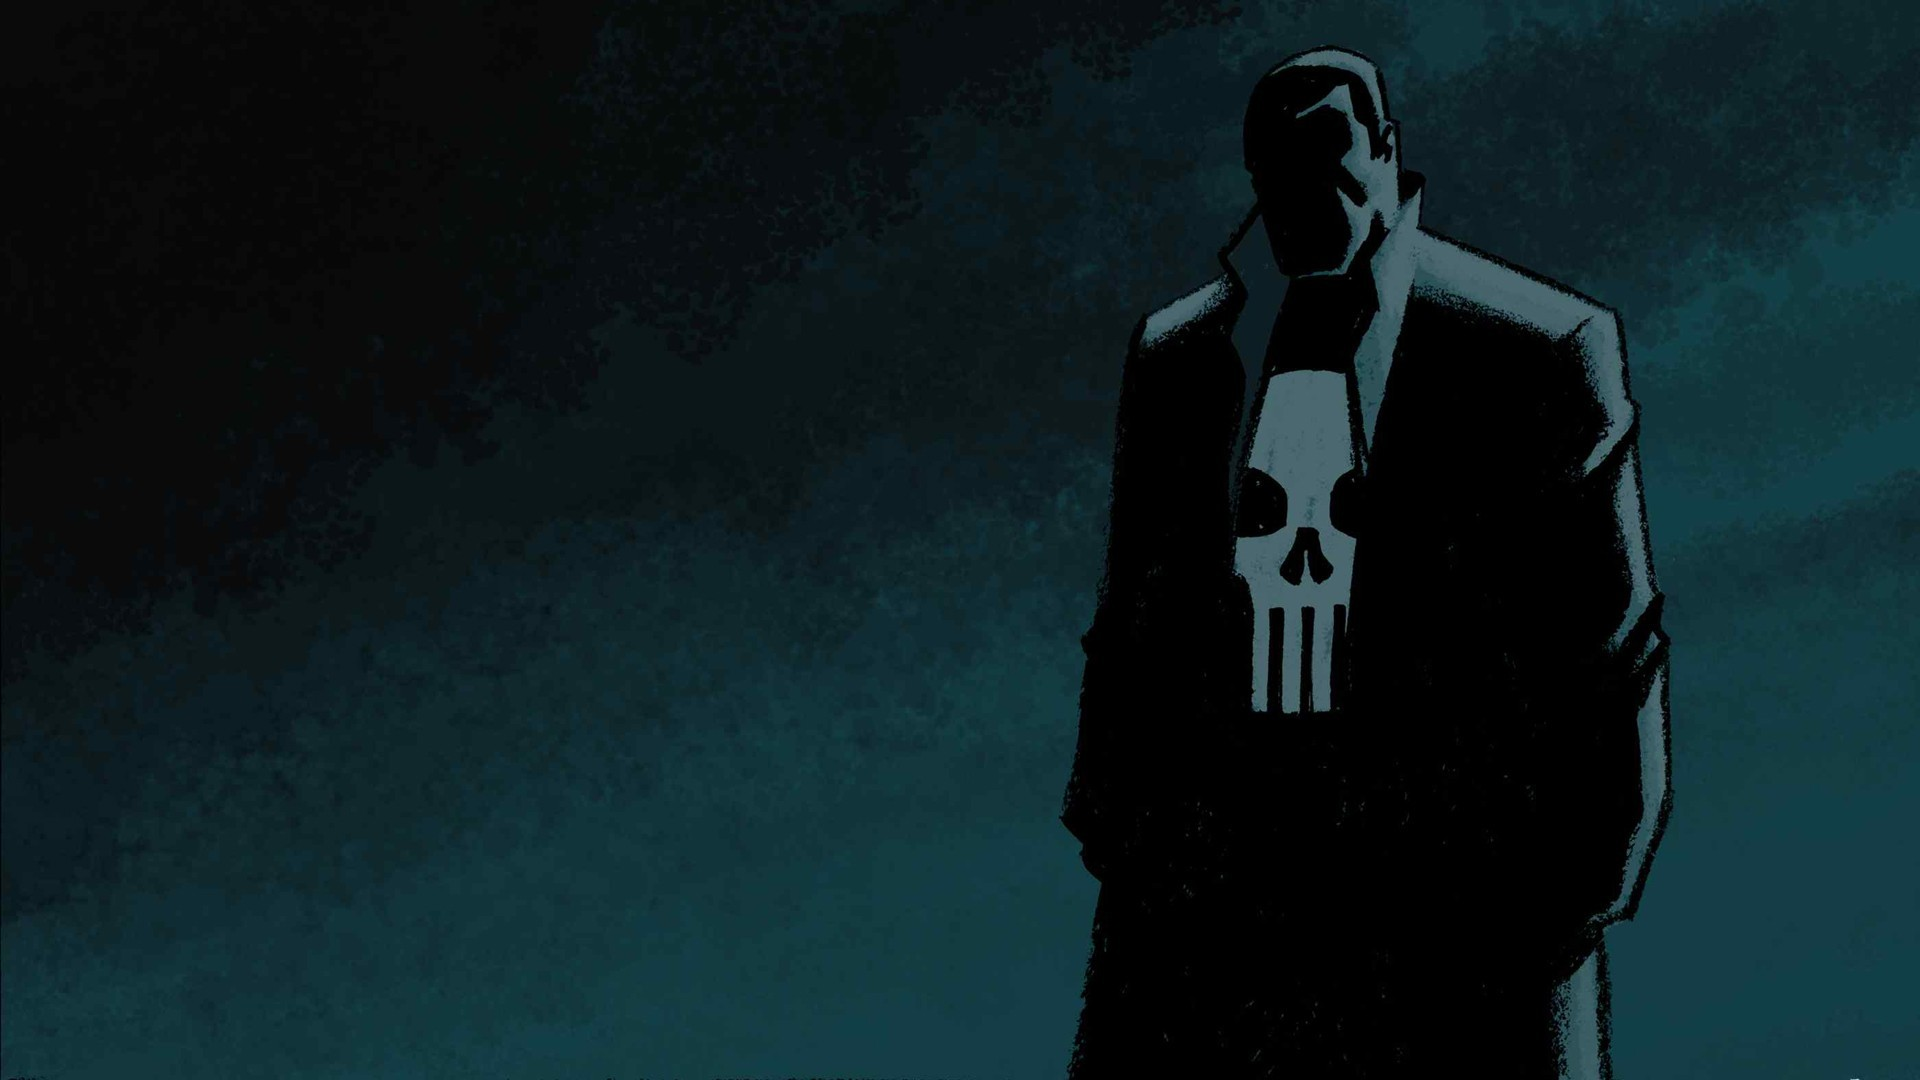 1920x1080 punisher wallpaper full hd |  | 108 kB by Elvina Chester